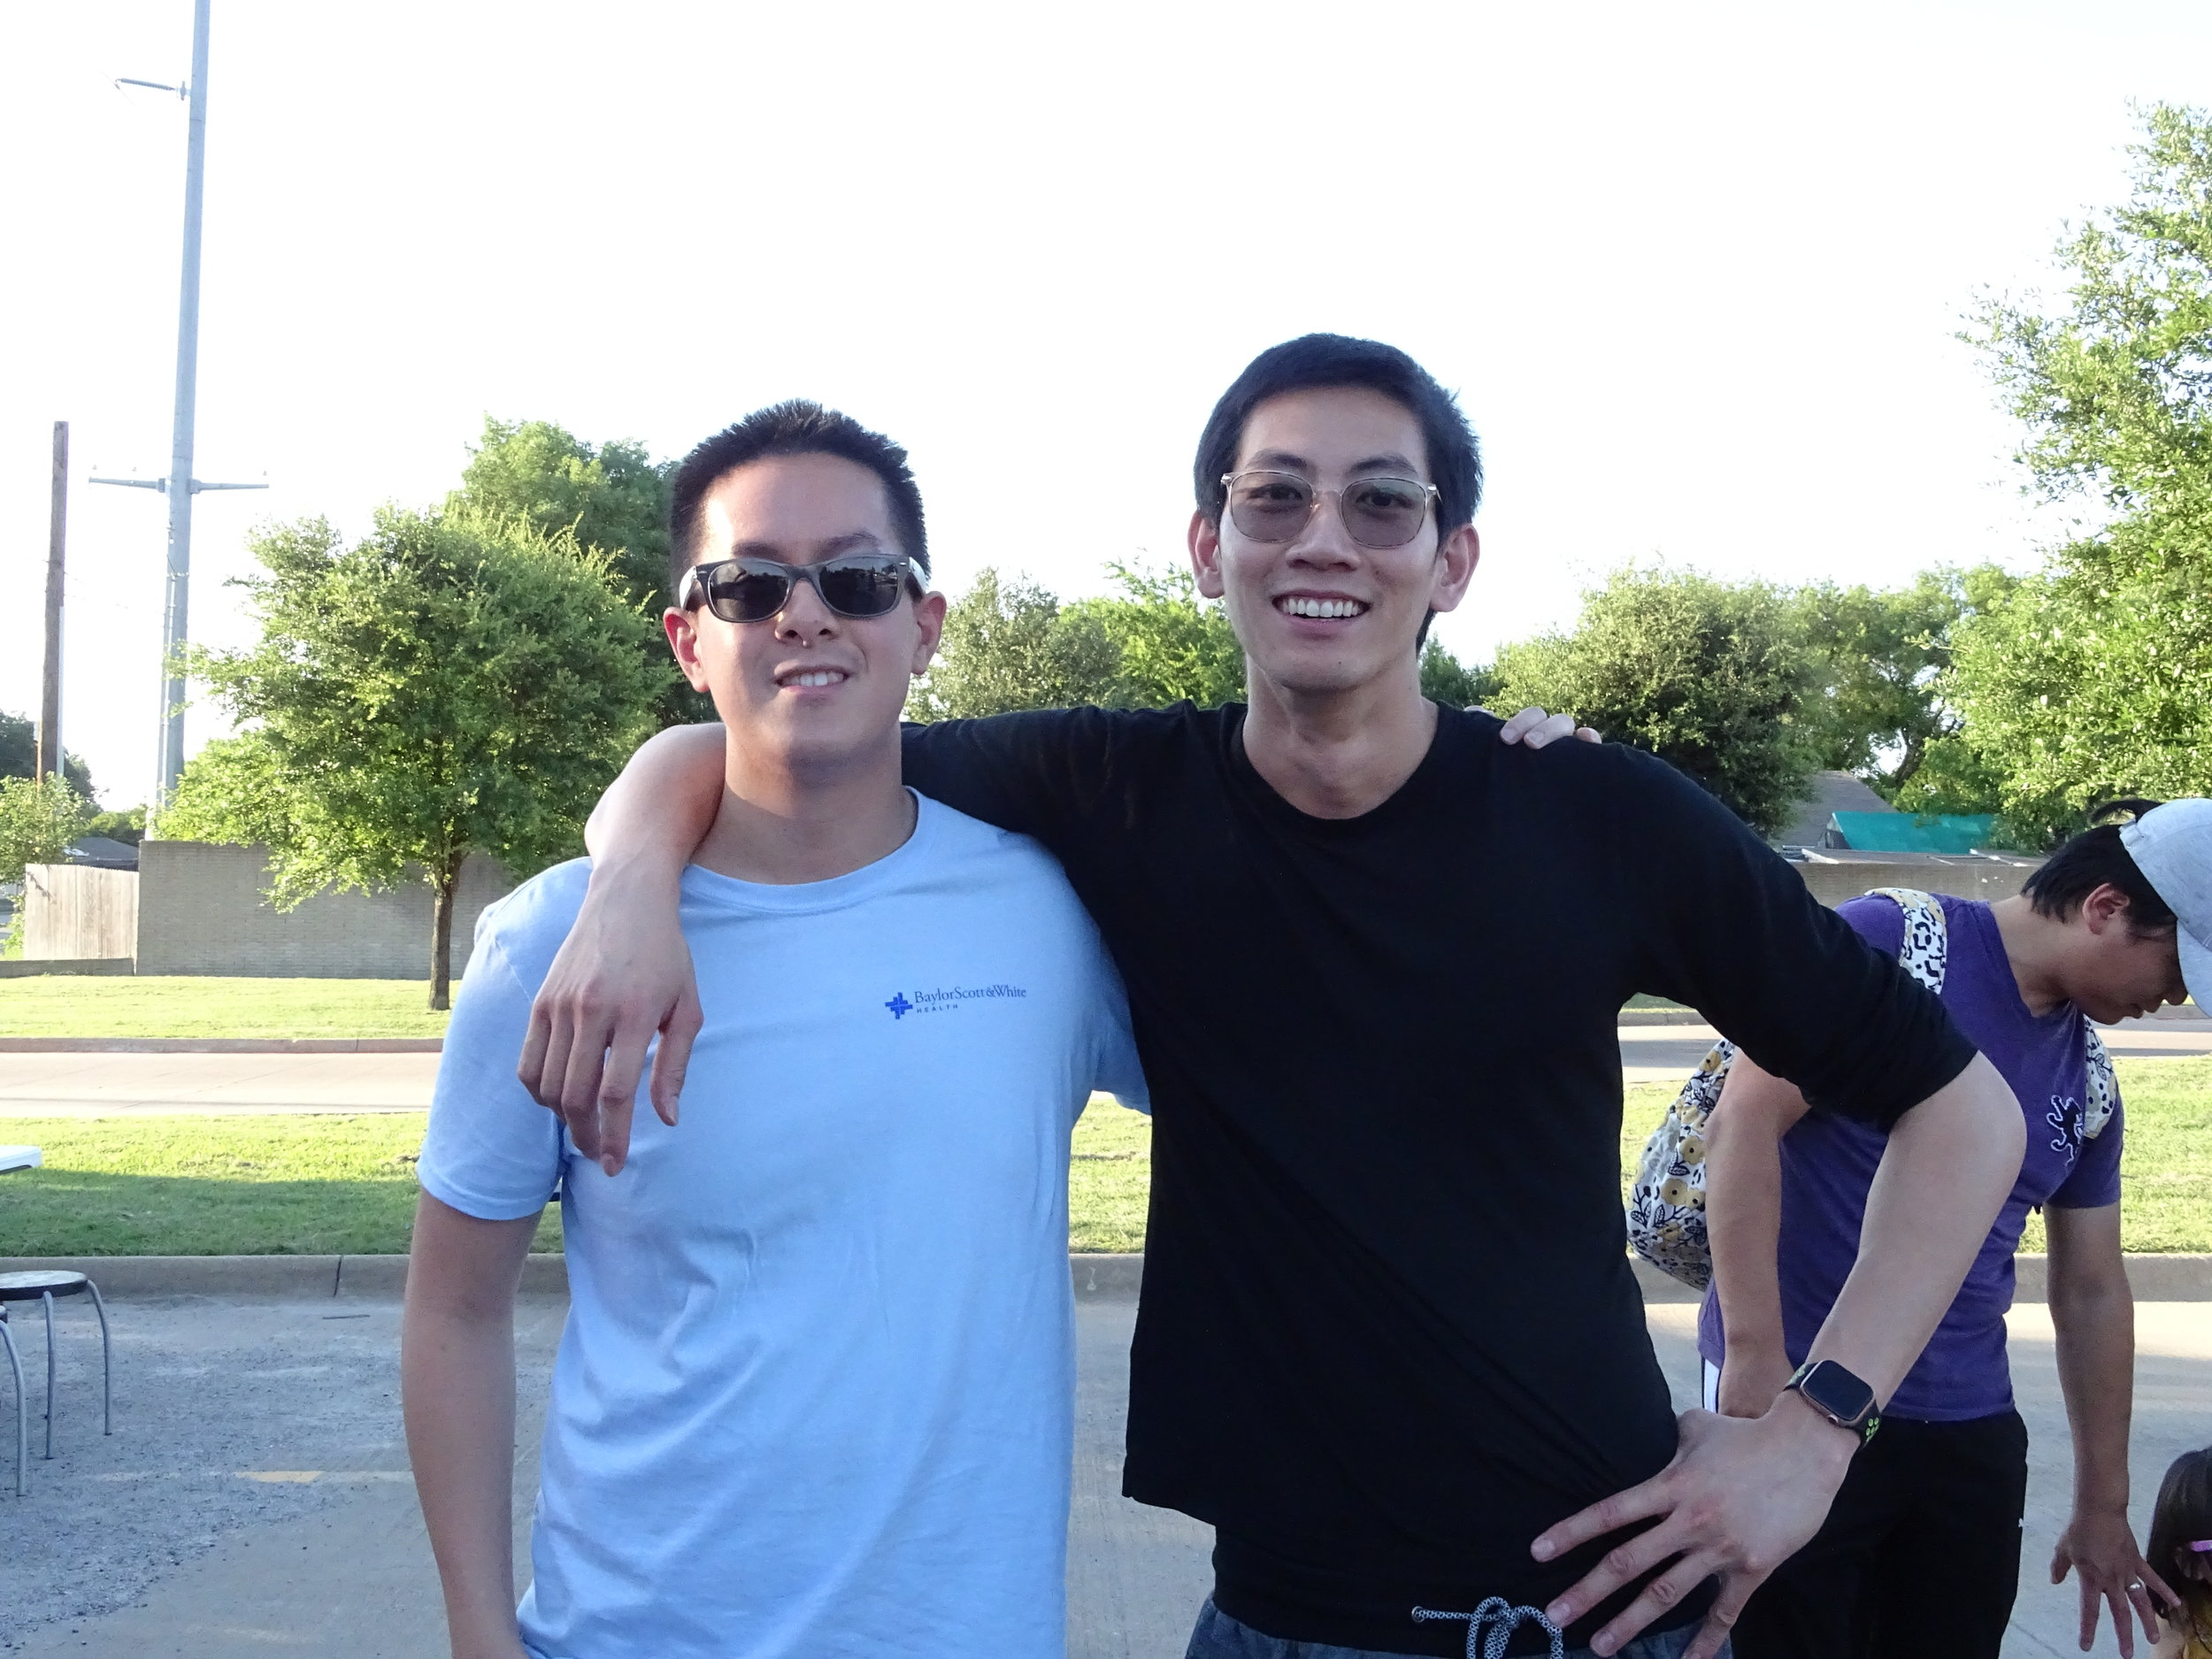 """""""I think there was an Ali Wong segment where she said we were 'jungle Asians.' You know, the Koreans. They're the 'pretty Asians' and then you have us. It's comedy, I get it, but sometimes I think that people are actually going to start seeing and believing it."""" - Alex Dinh, 29 (left)  """"Yeah, we're not all jungle Asians. Our culture is very family-oriented. There's actually a lot of shame surrounding divorce and pressure to keep the generational structure together. That's changing with the new generation though, and we're starting to prioritize our happiness."""" - Jay Tran, 29 (right)"""